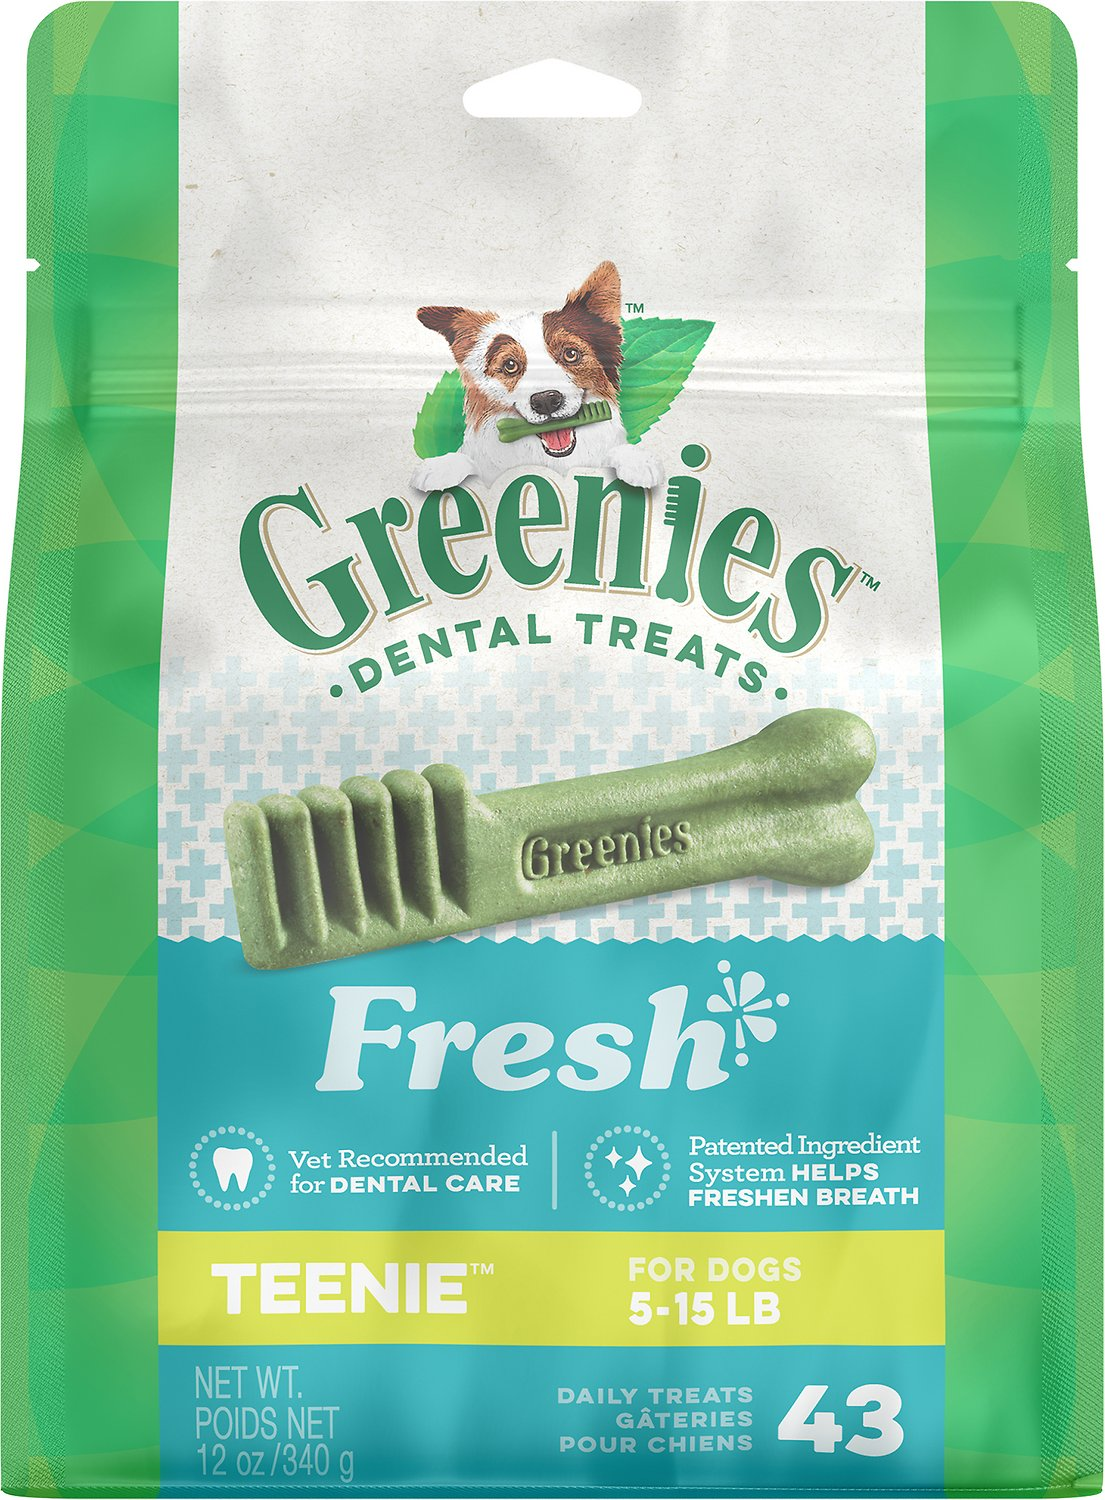 Greenies Fresh Teenie Dental Dog Treats, 43-count